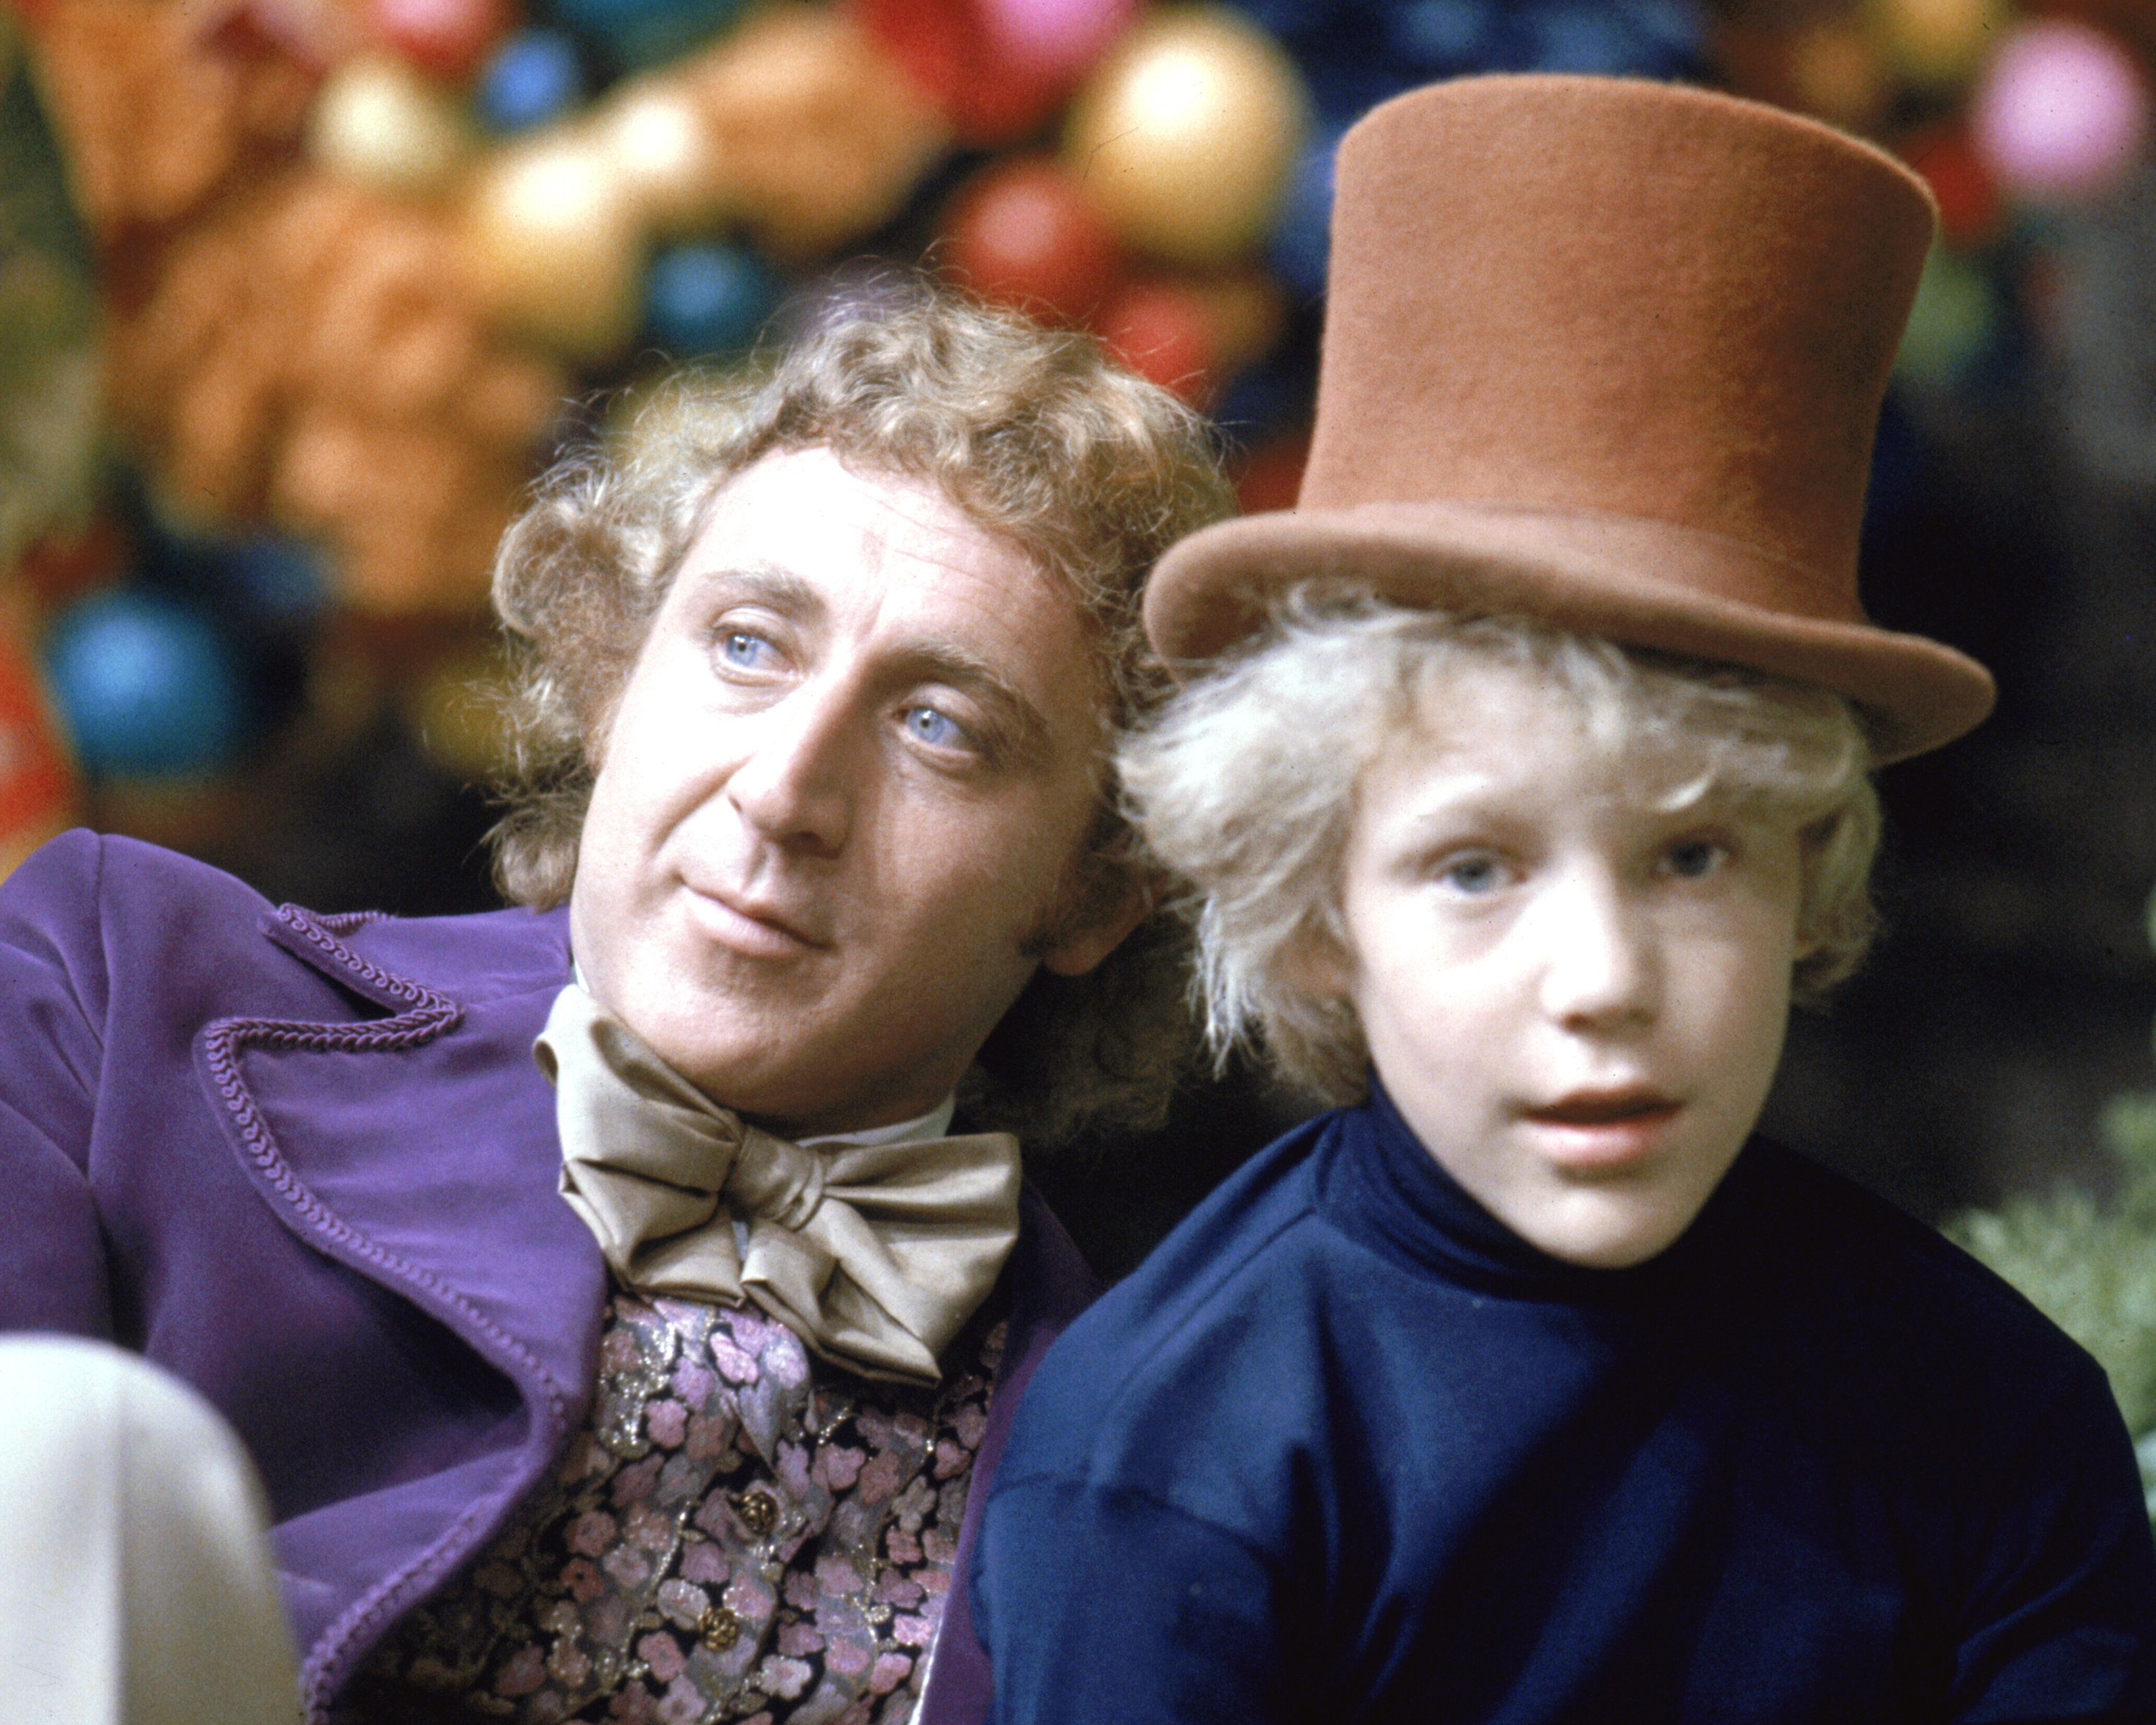 Gene Wilder as Willy Wonka and Peter Ostrum as Charlie Bucket, circa 1971.